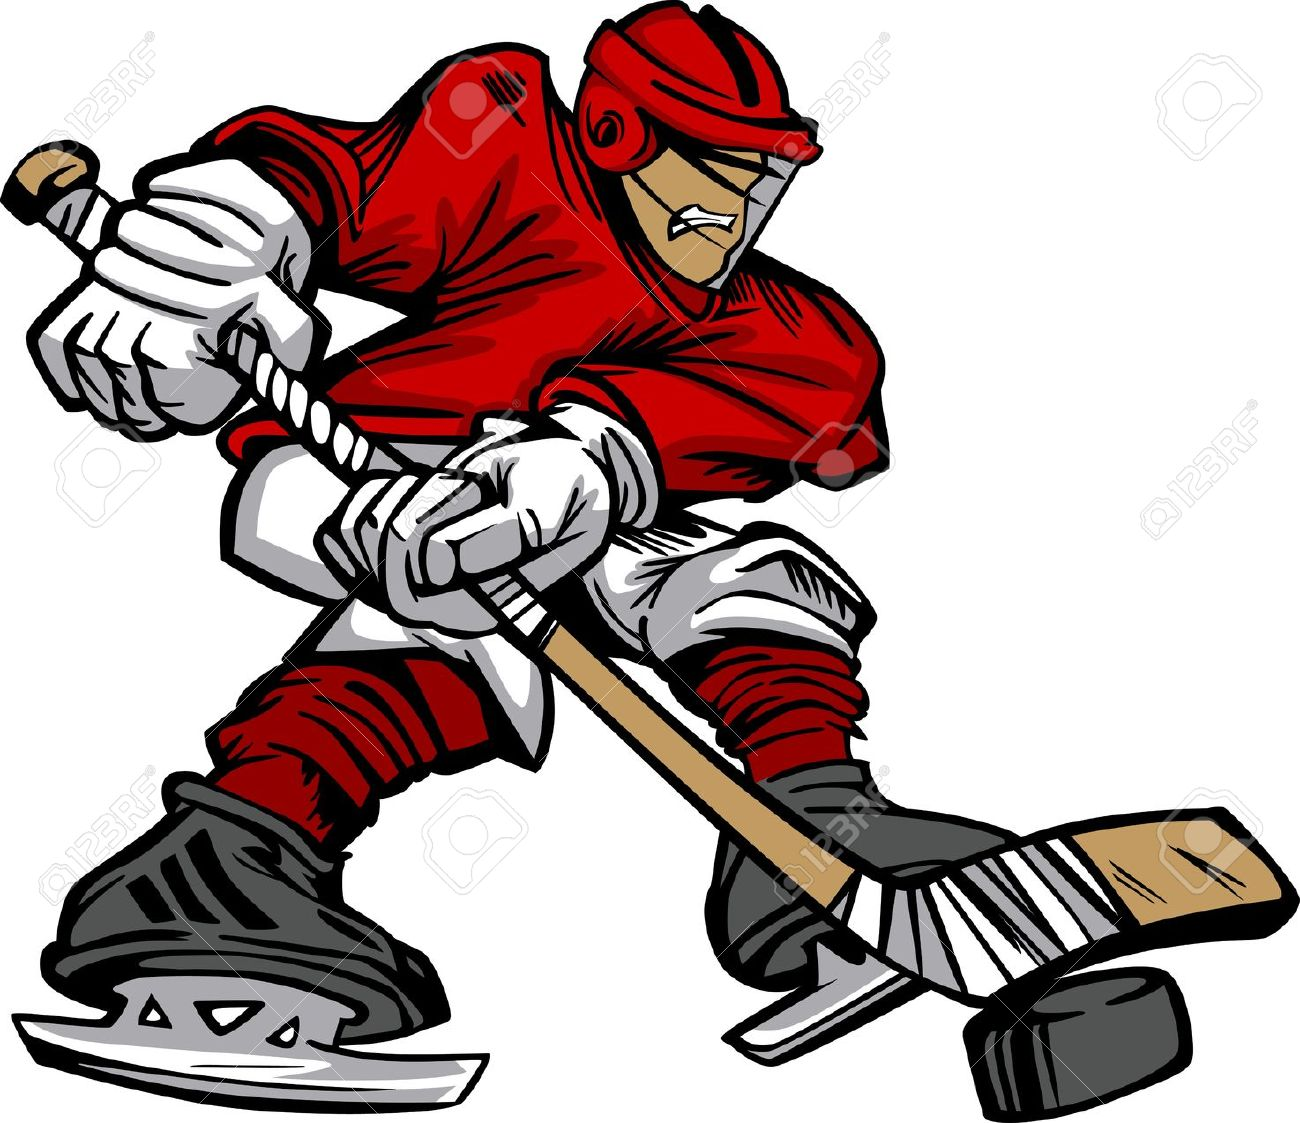 hight resolution of 1300x1123 hockey player clipart free 101 clip art